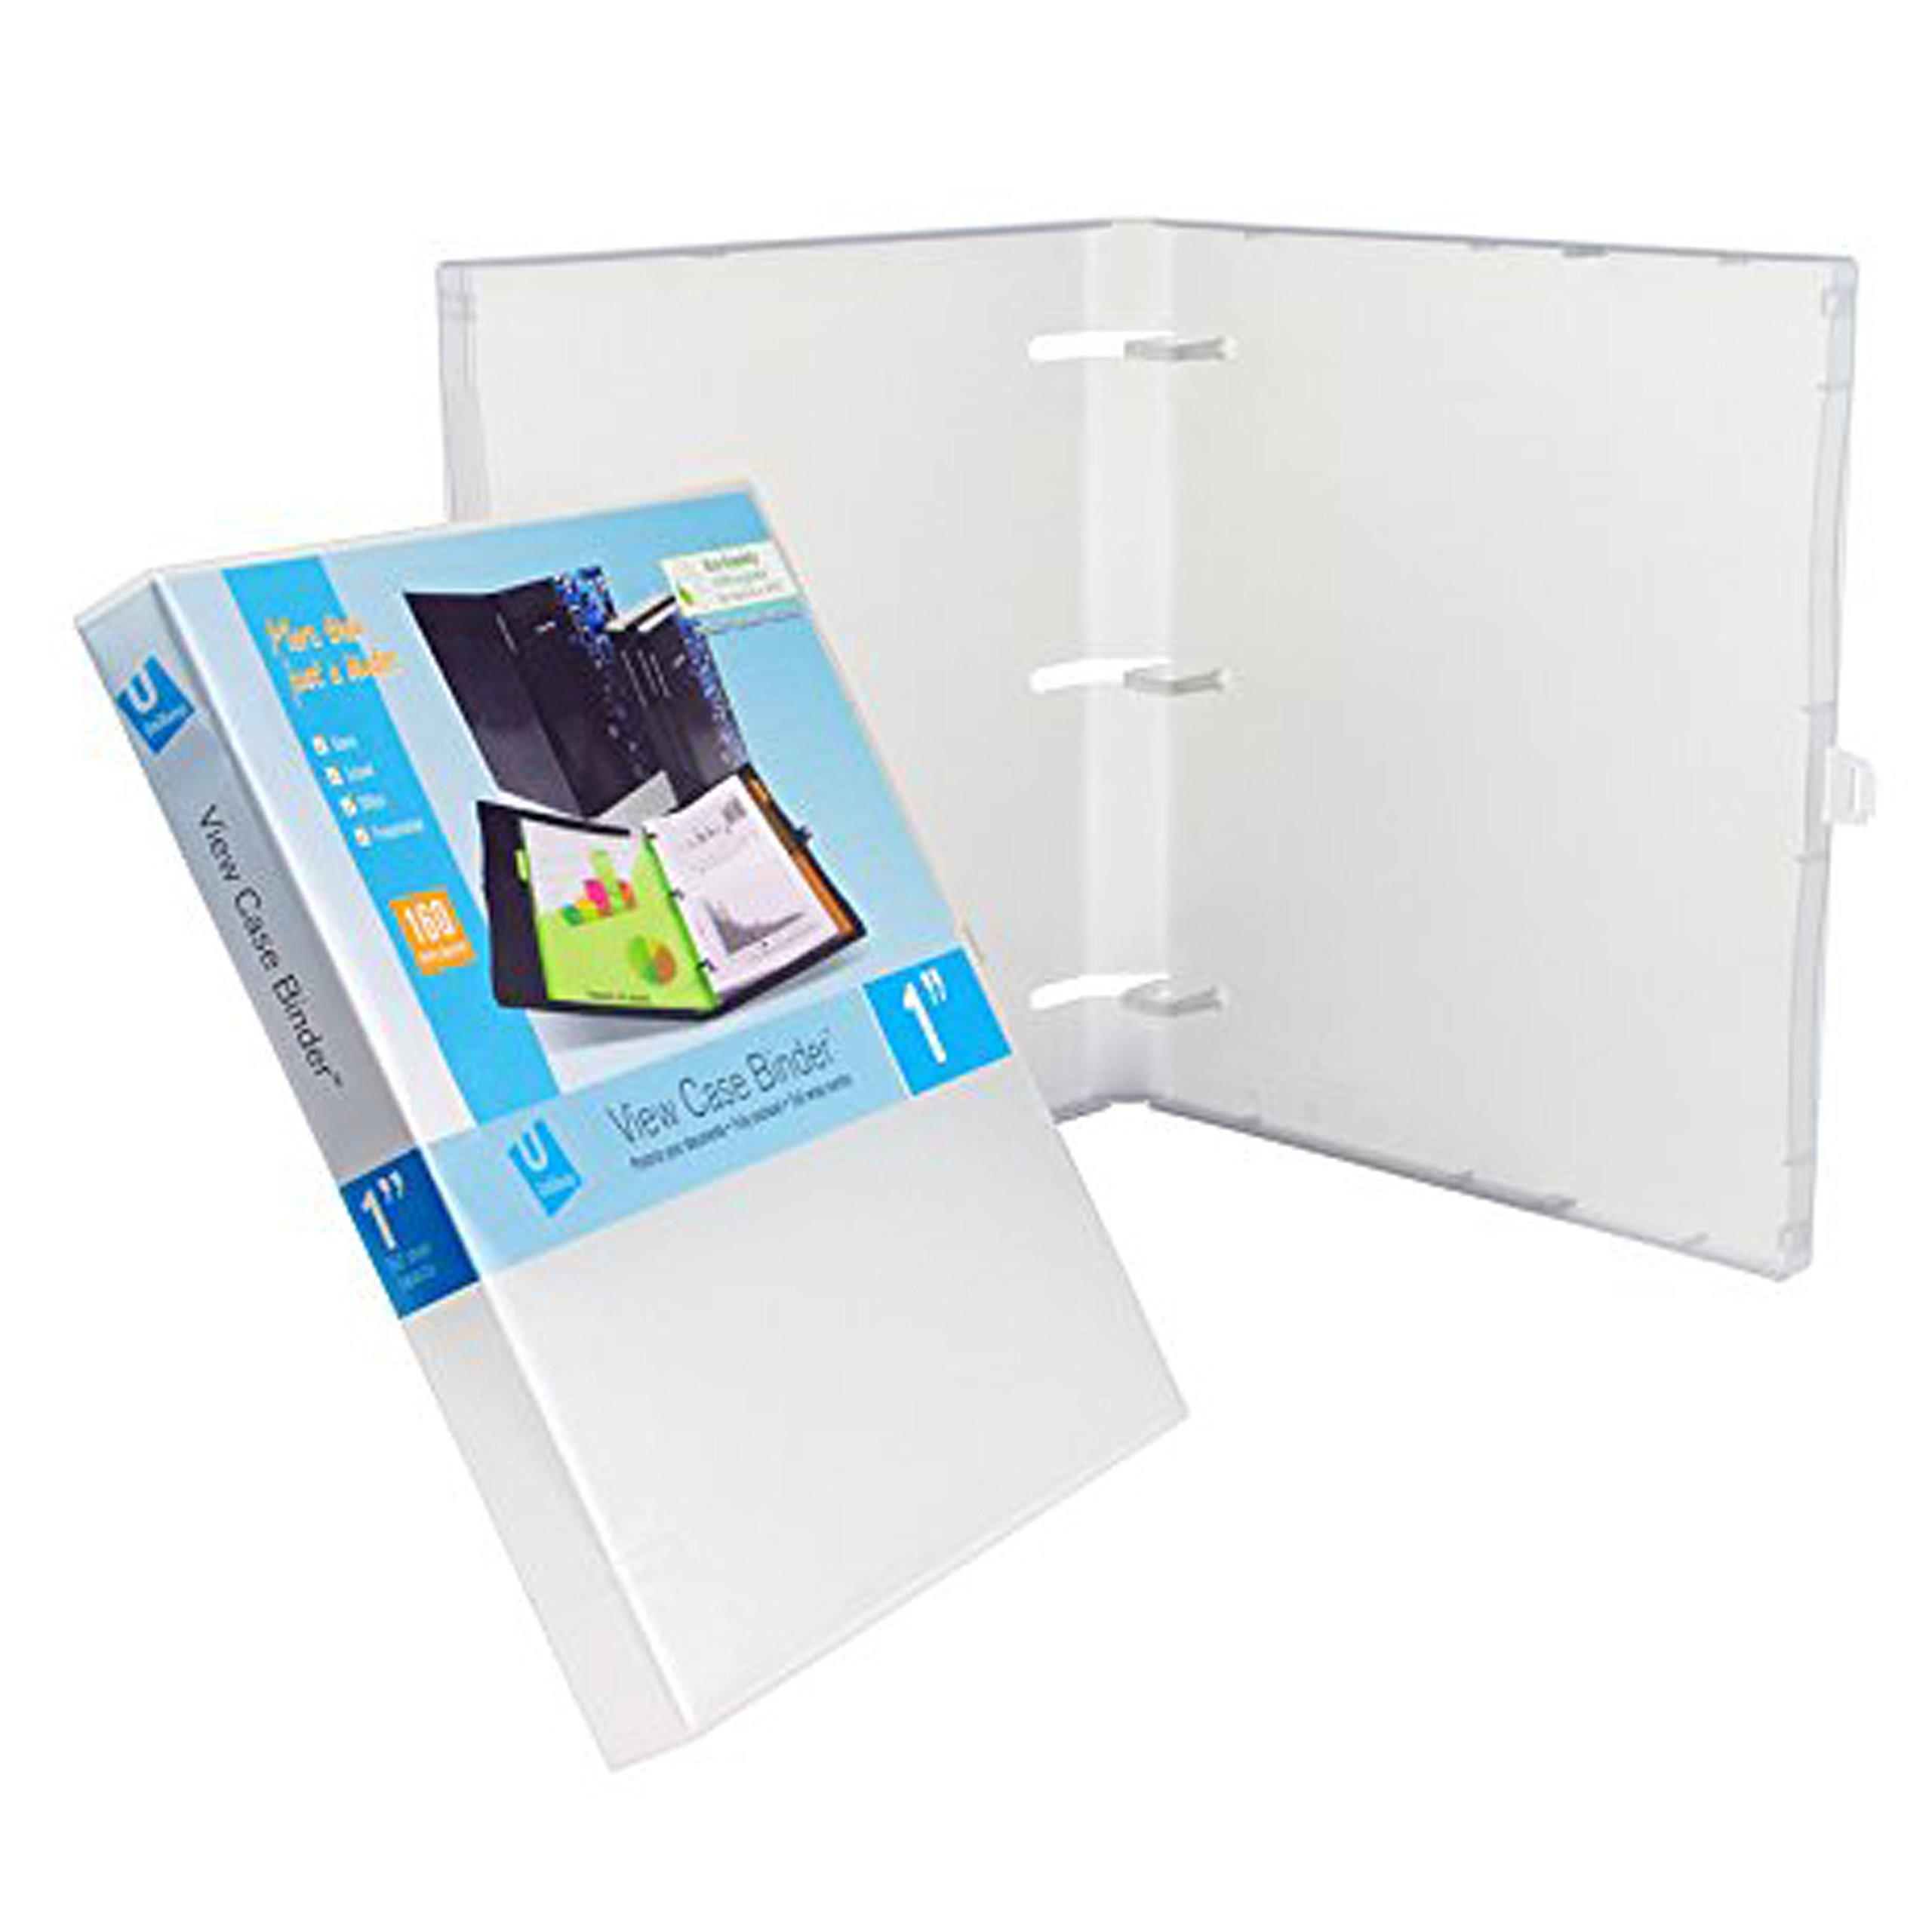 UniKeep 3 Ring Binder - Clear - Case View Binder - 1.0 Inch Spine - With Clear Outer Overlay - Box of 20 Binders